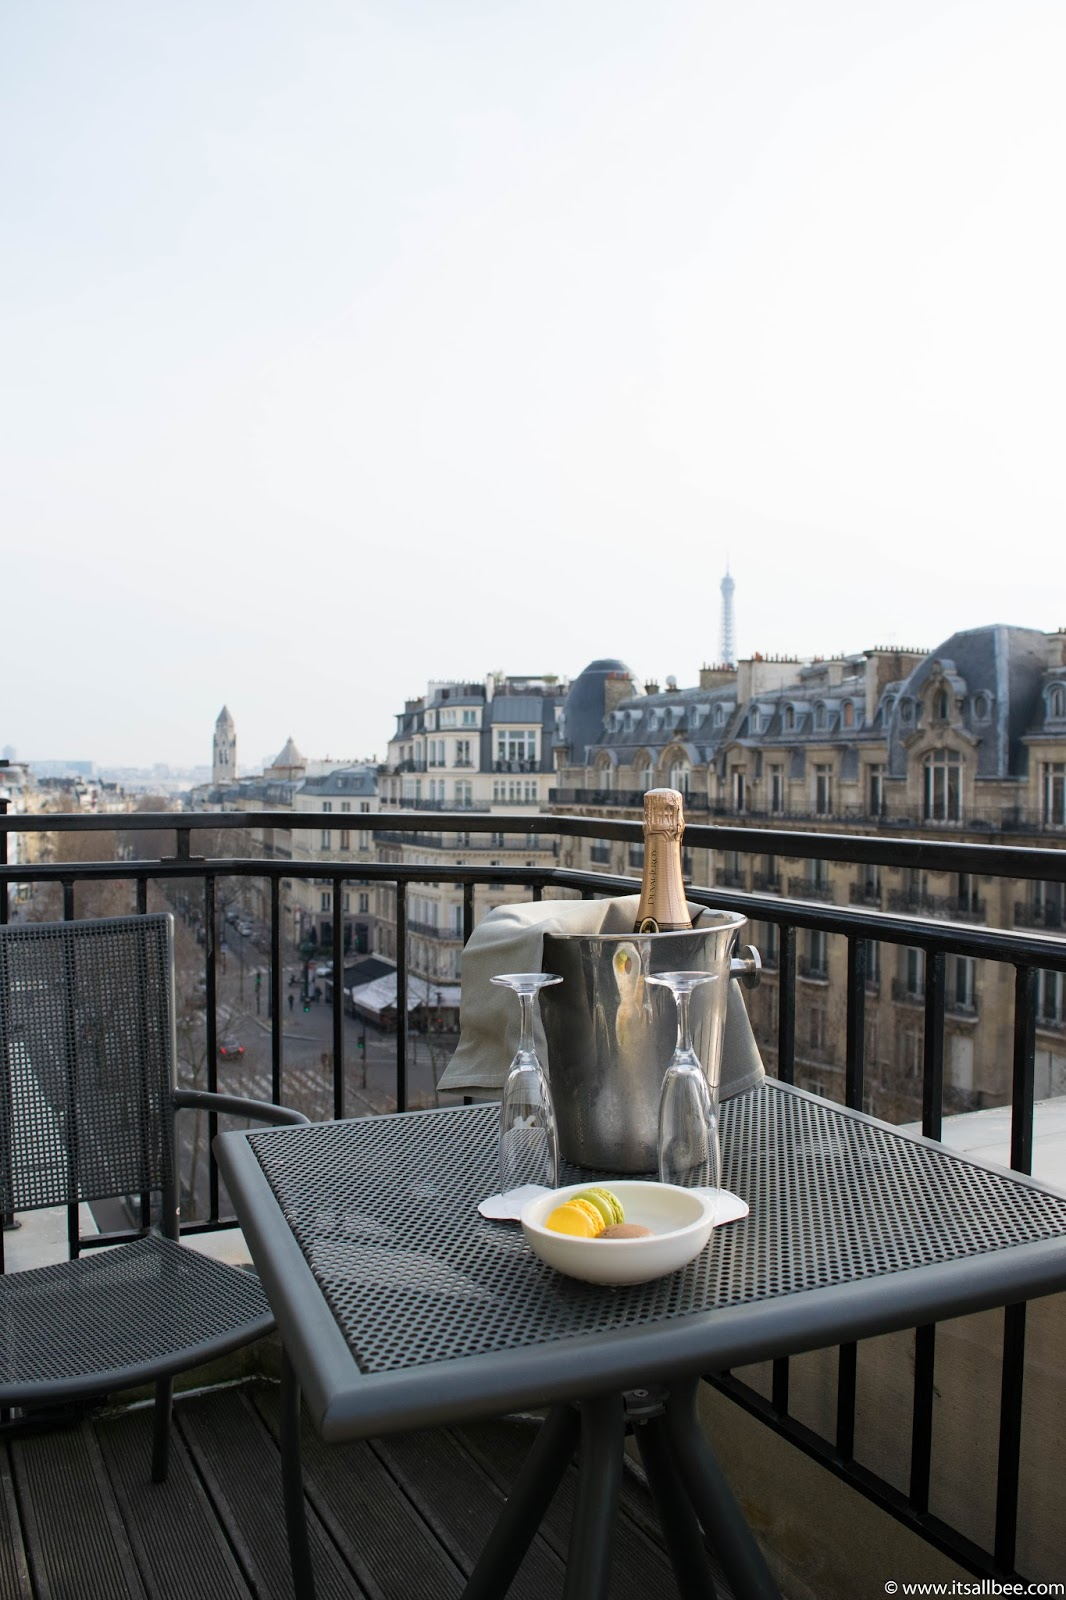 Paris Hotels With Views of Eiffel Tower [and Arc de Triomphe] | hotels with views of eiffel tower paris